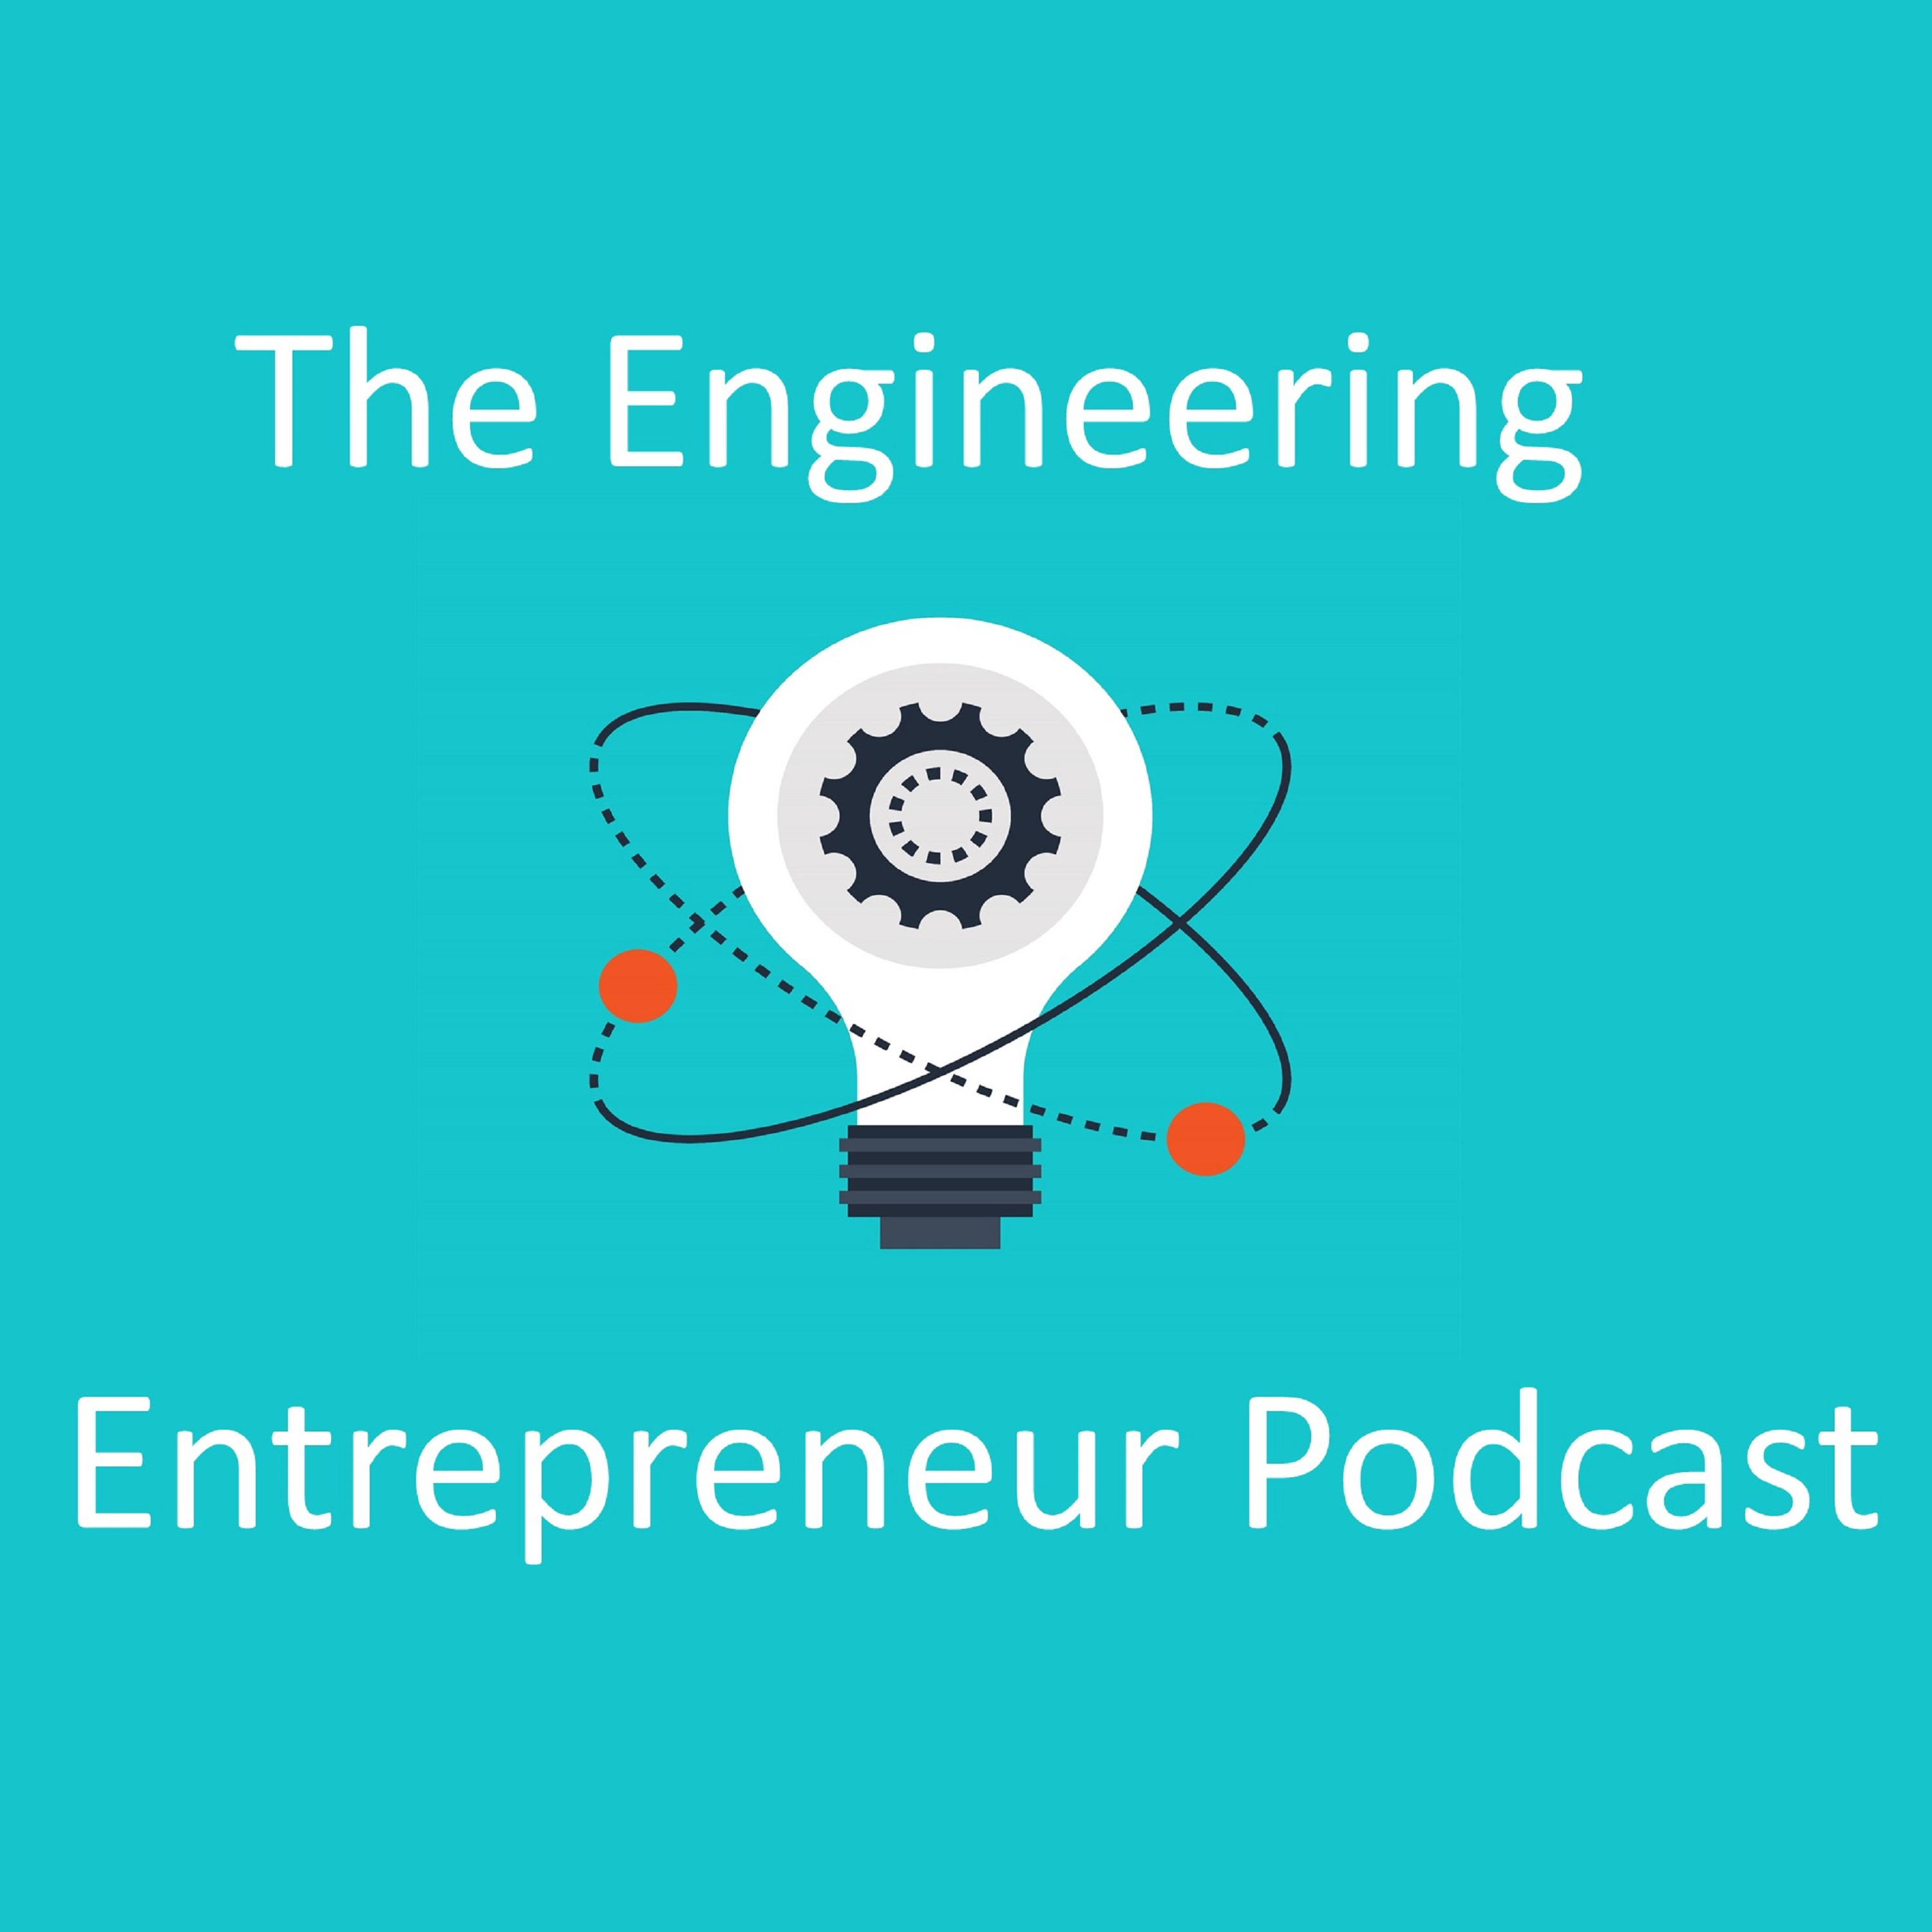 The Engineering Entrepreneur Podcast show art